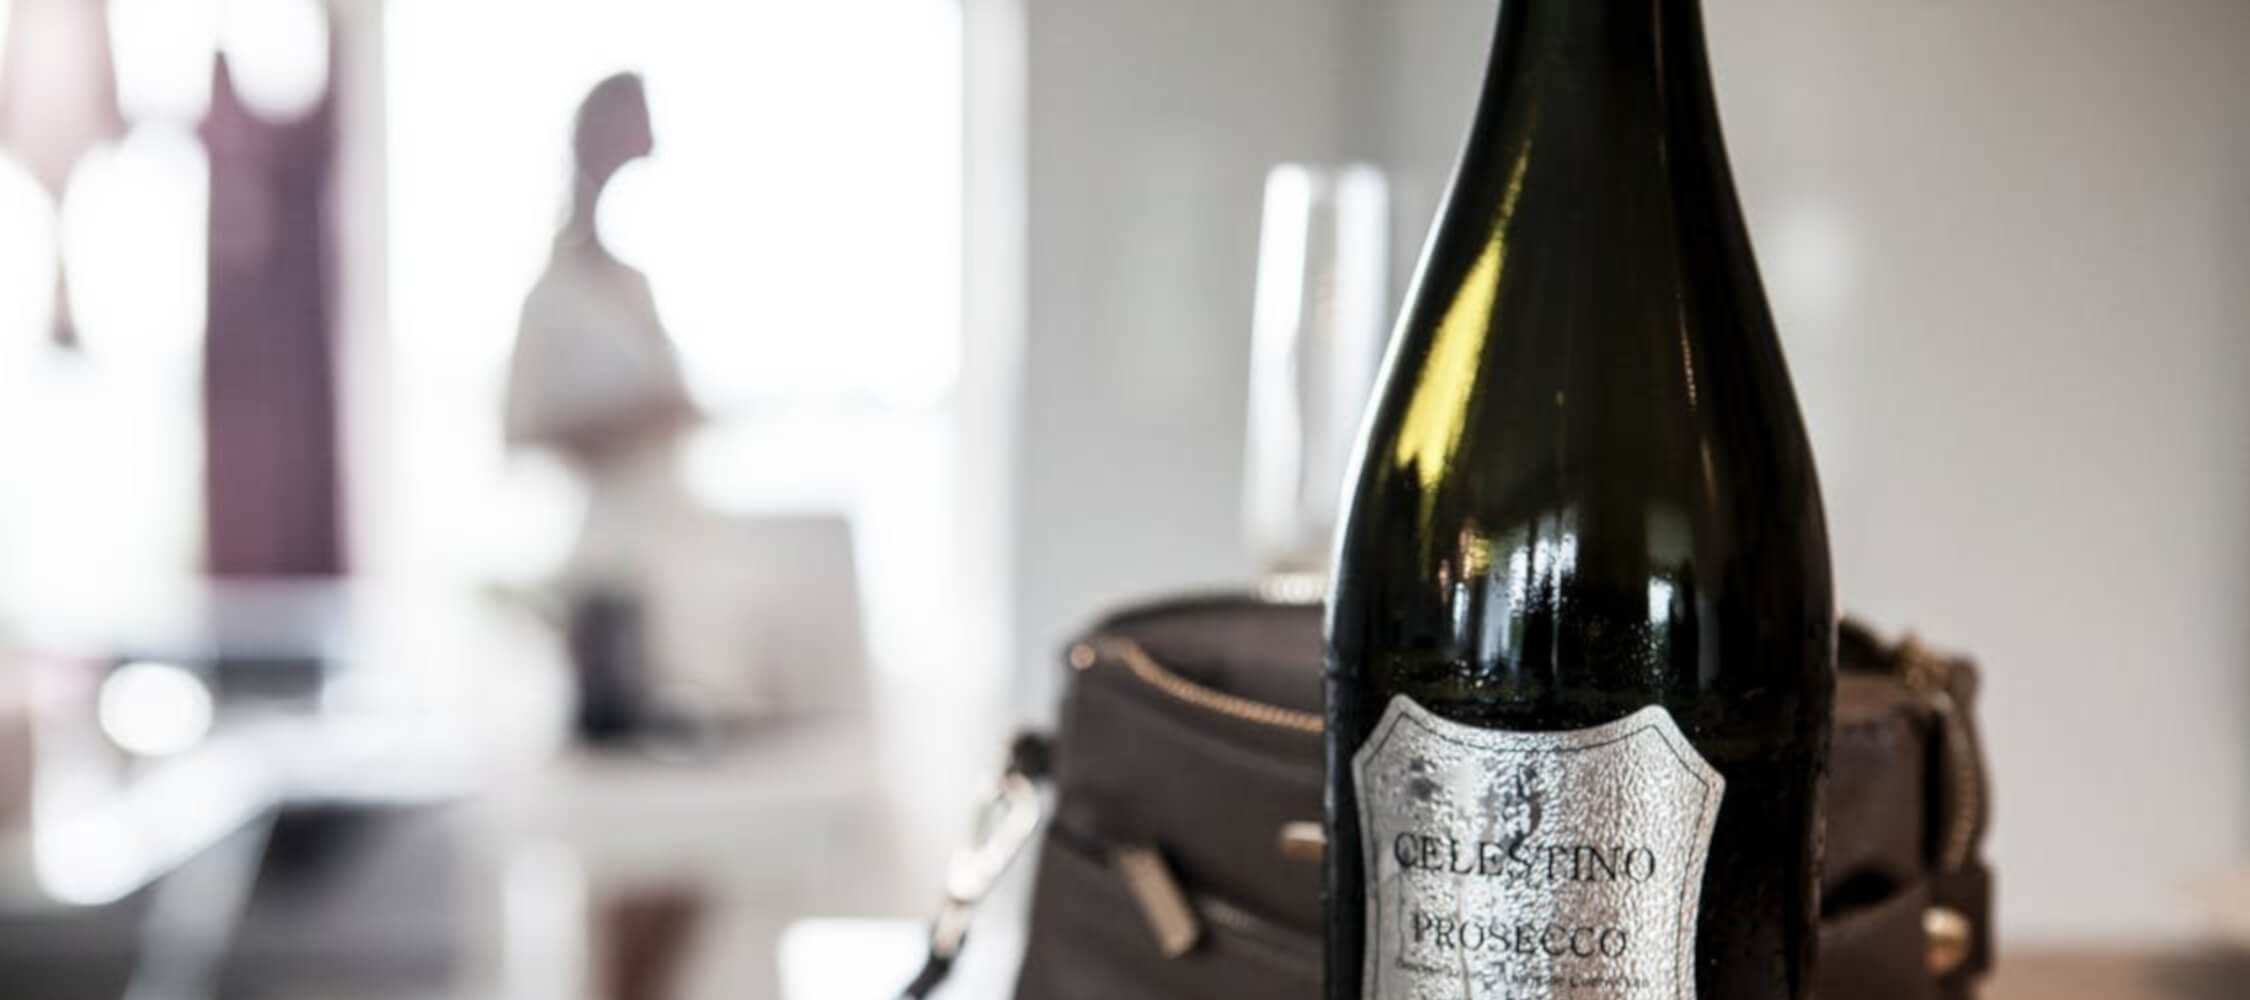 Hotel_Flora_Merano_Rooms_Amenities_Sekt_Detail_Pexels_2250x1000